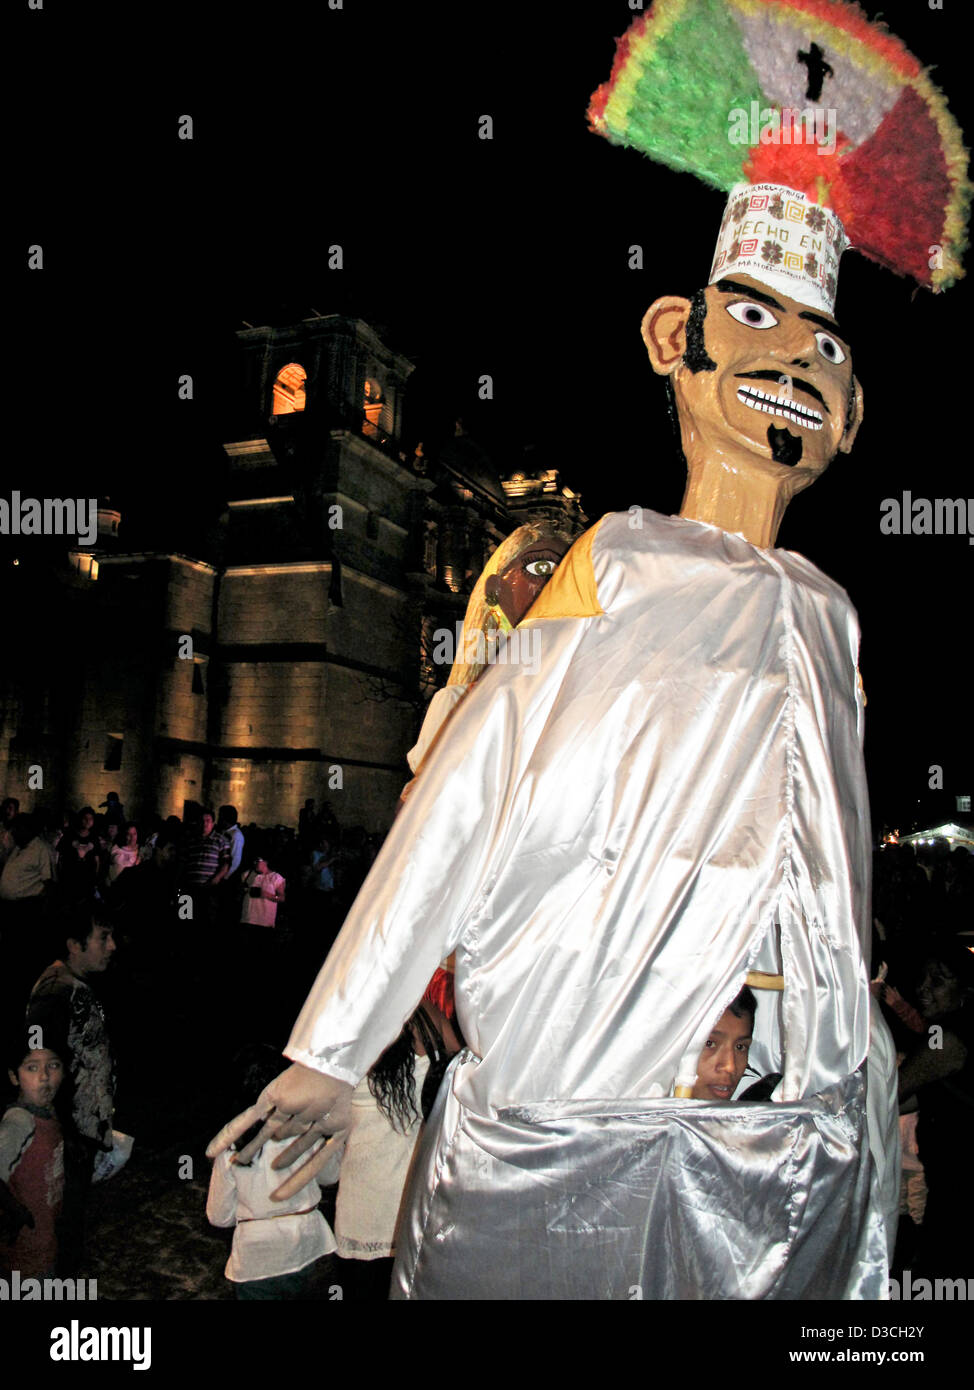 giant puppet with papier mache head & feathered headdress in front of Oaxaca Cathedral with face of teen boy - Stock Image